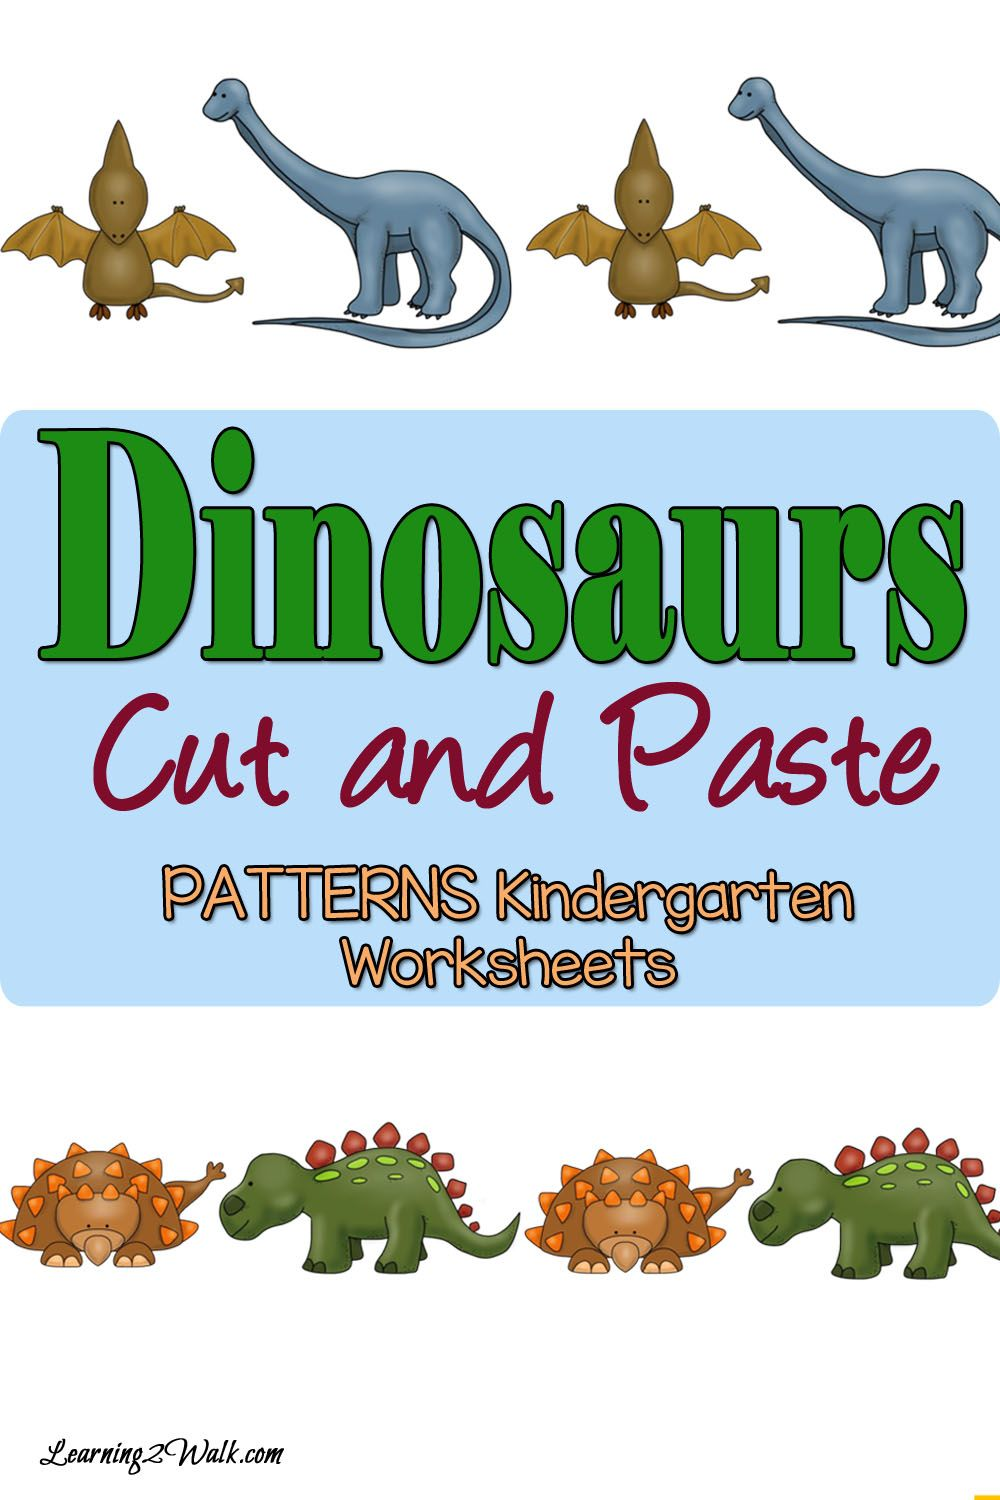 Free Dinosaurs Patterns Worksheets For Kindergarten Pattern Worksheets For Kindergarten Kindergarten Worksheets Pattern Worksheet [ 1500 x 1000 Pixel ]